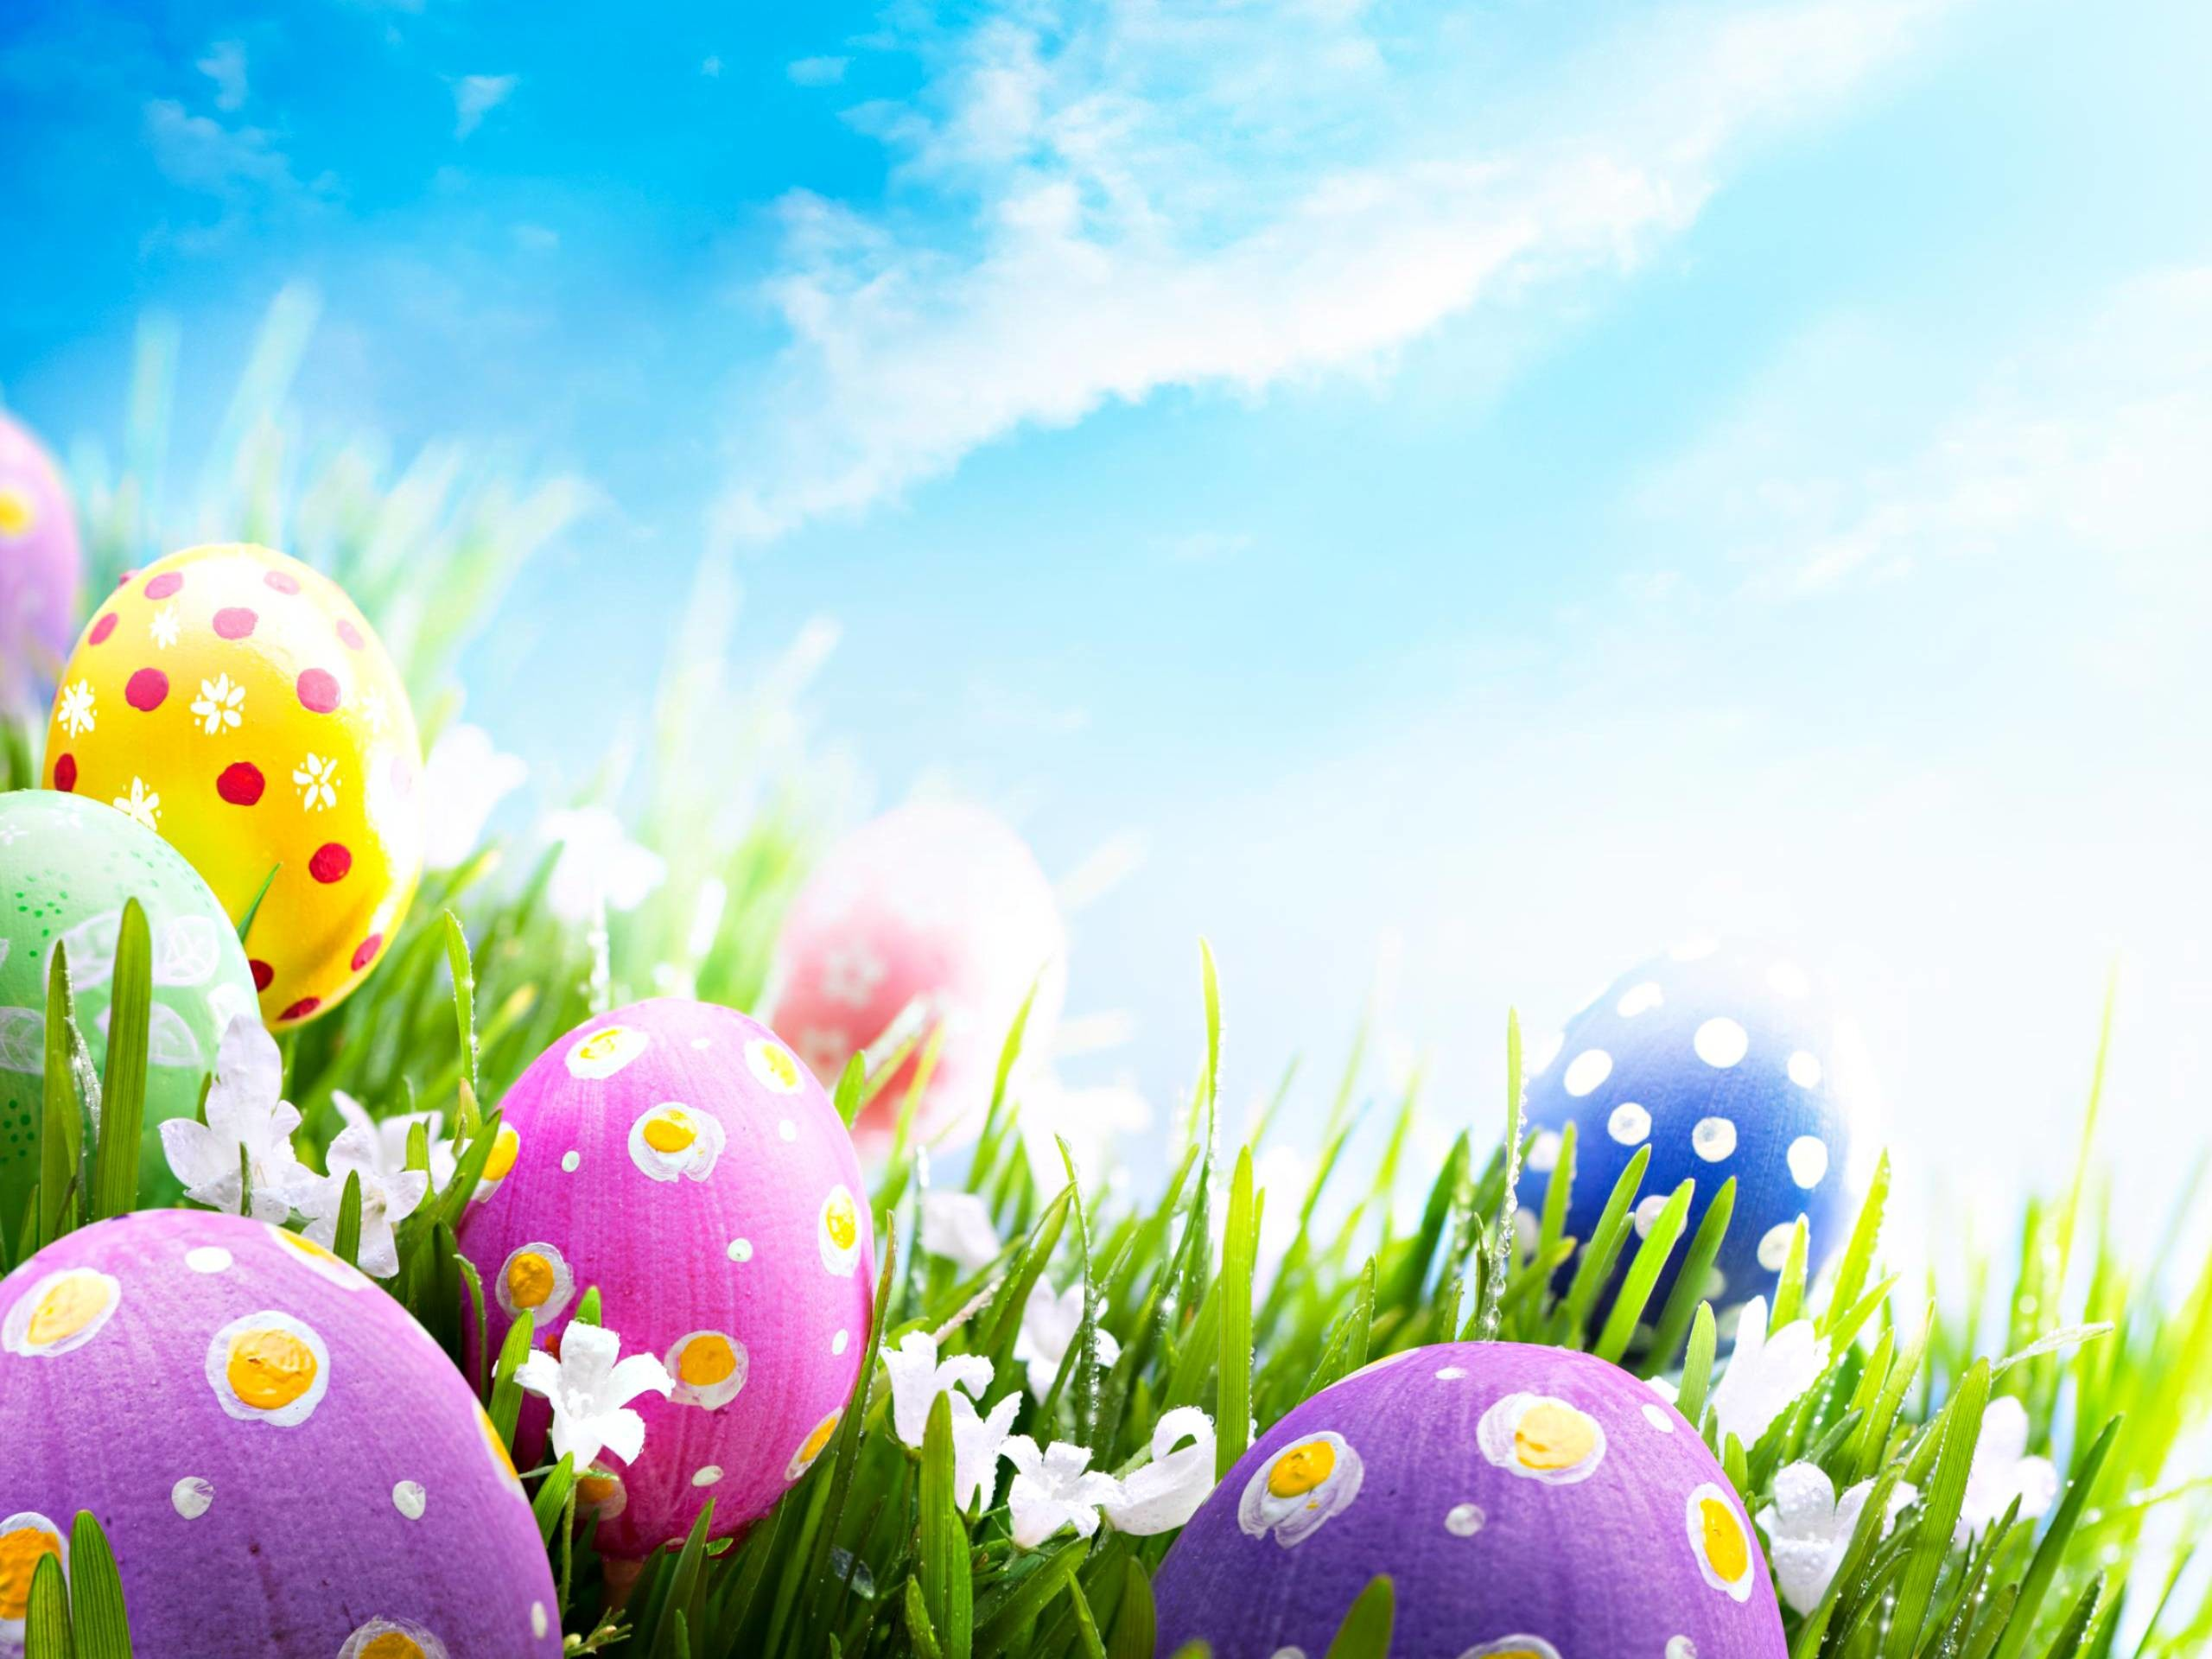 2560x1920 Happy Easter 26 222526 Images HD Wallpapers| Wallfoy.com